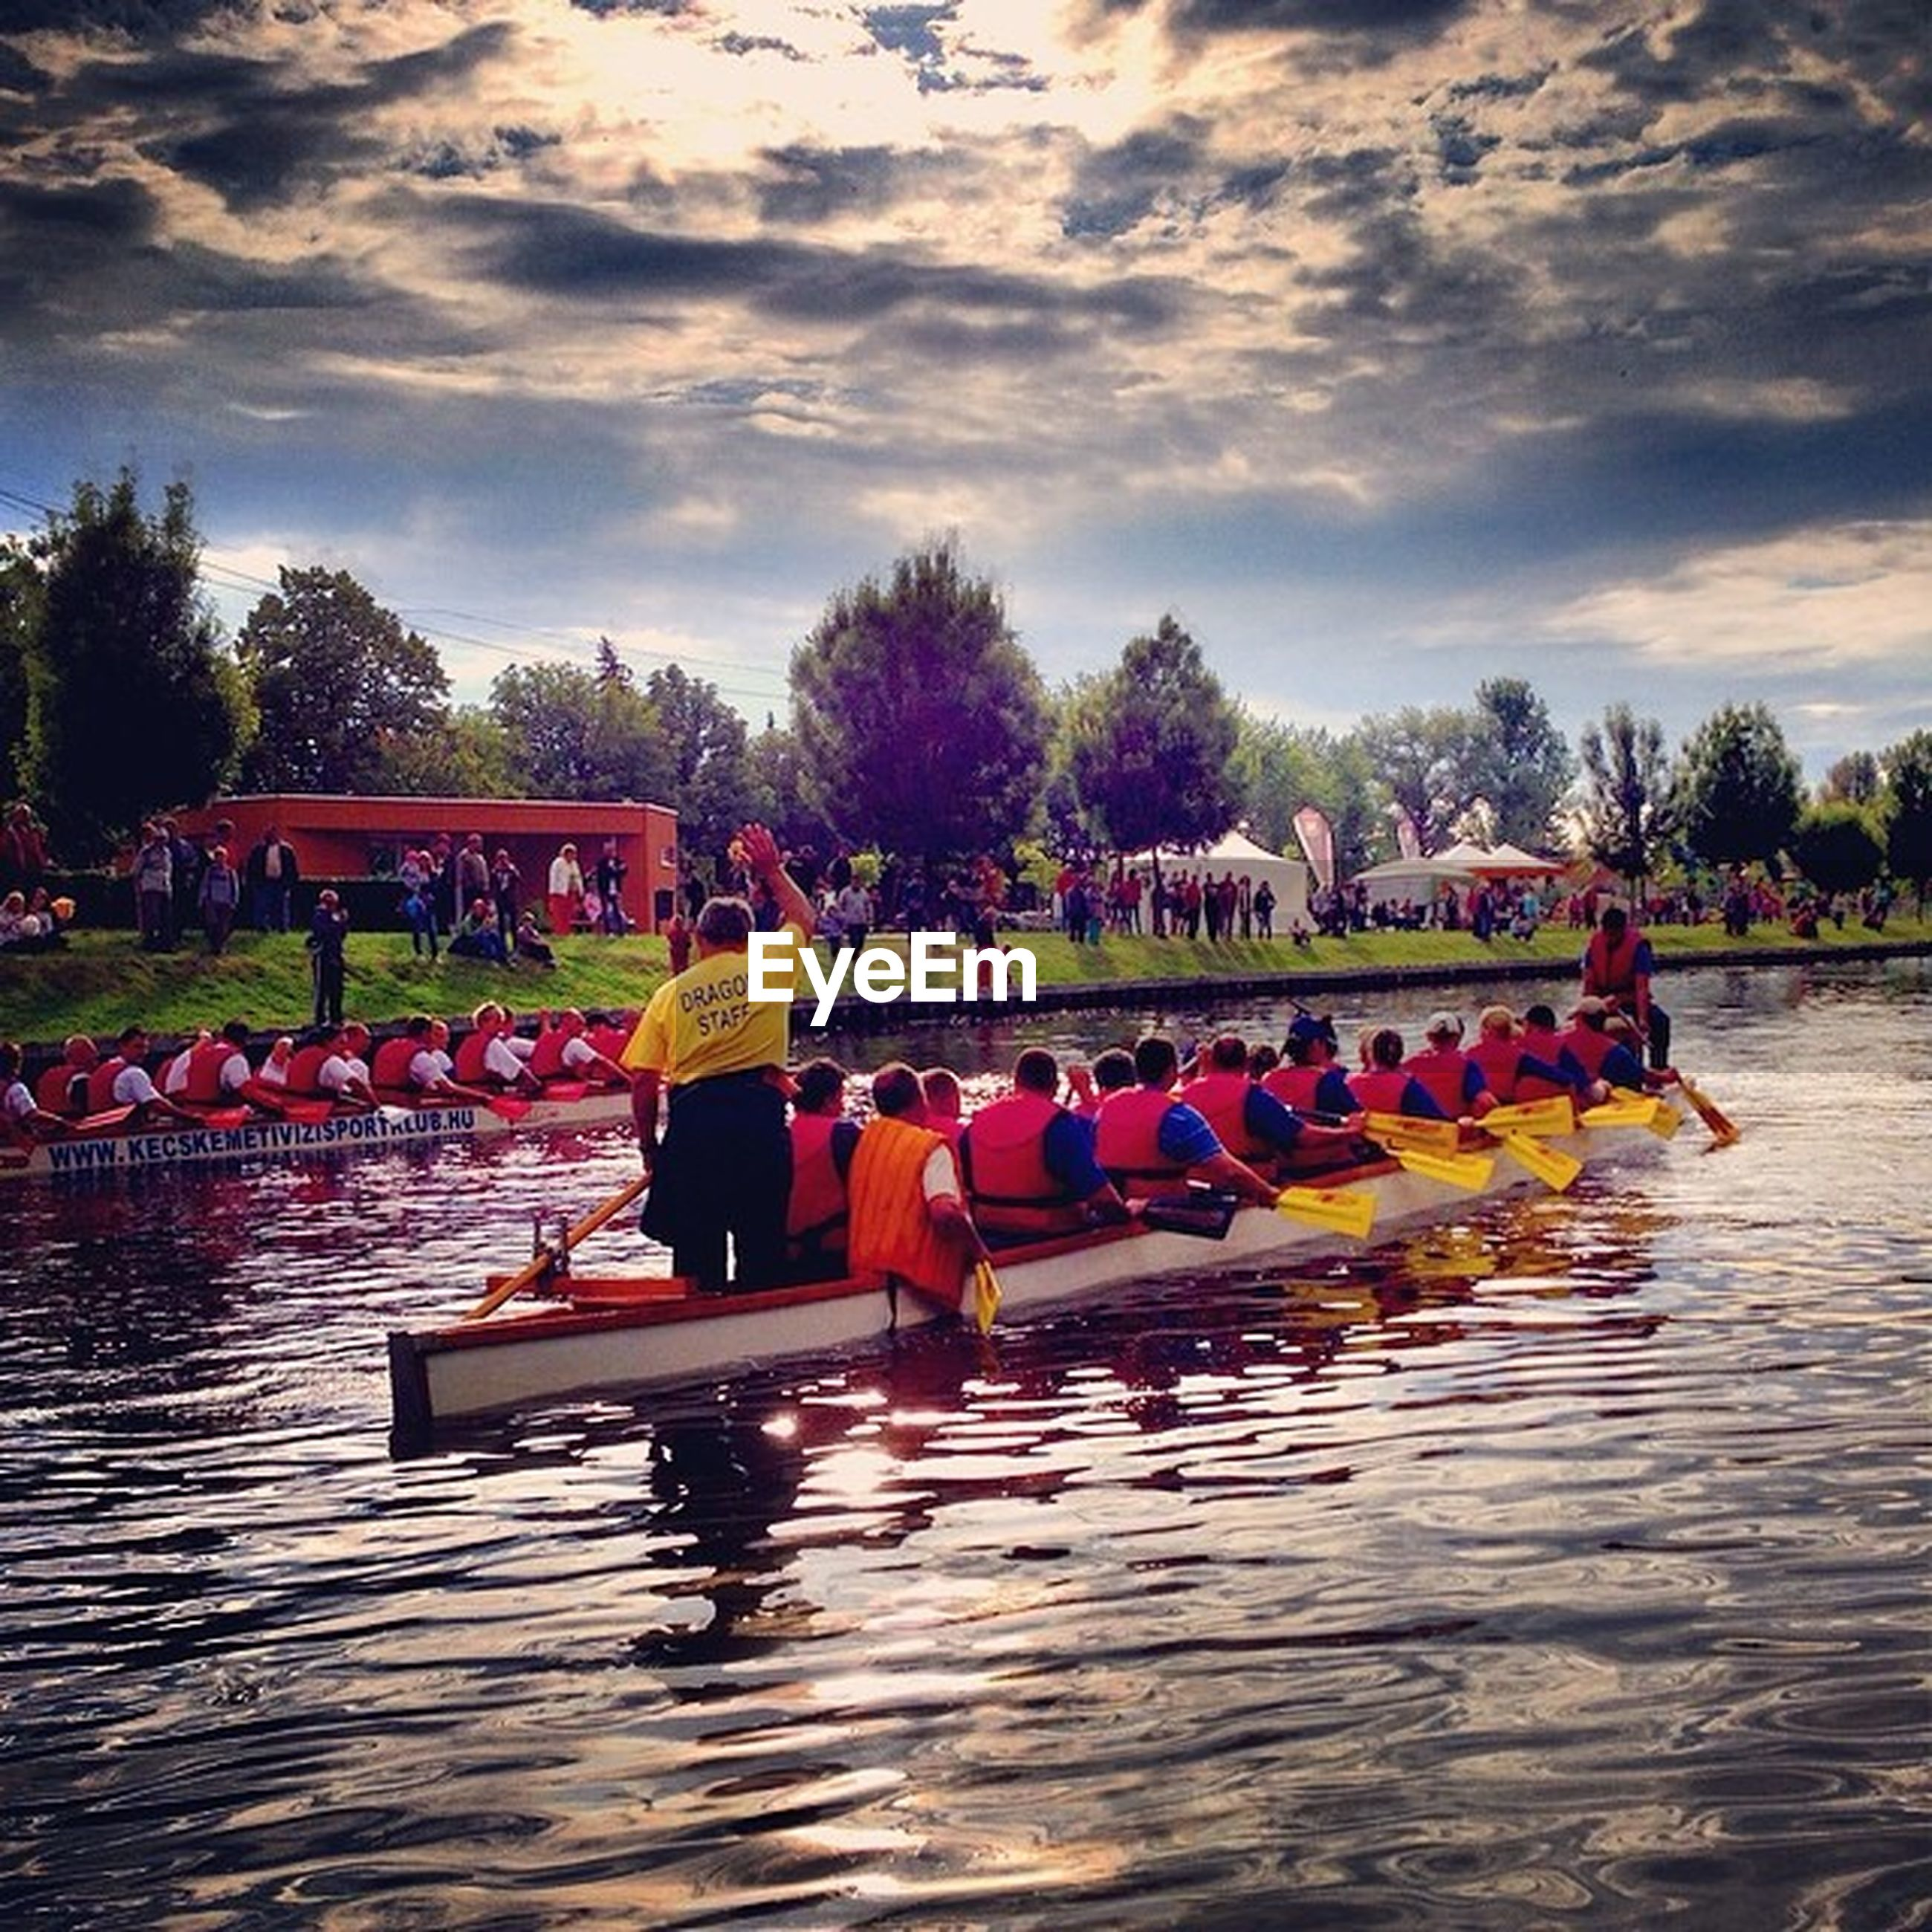 sky, tree, cloud - sky, water, lifestyles, leisure activity, person, large group of people, men, cloud, built structure, lake, cloudy, outdoors, nature, relaxation, park - man made space, togetherness, sitting